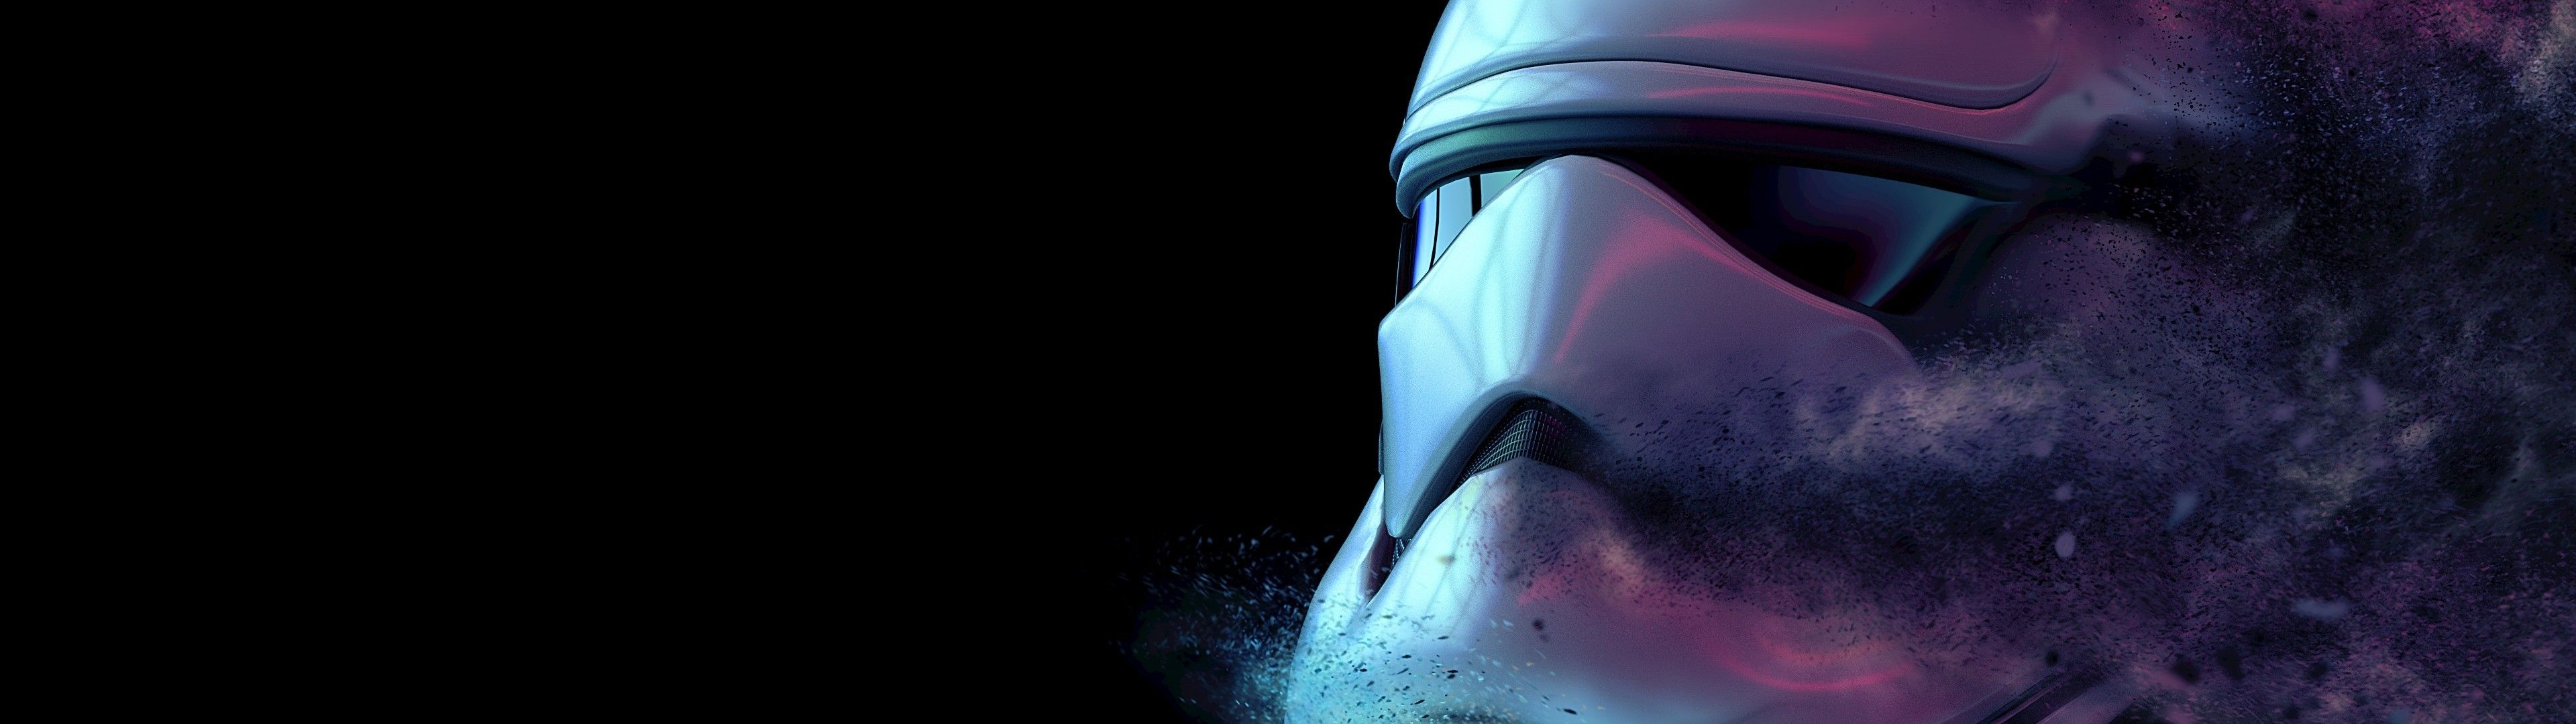 Star Wars 3840x1080 Wallpapers Top Free Star Wars 3840x1080 Backgrounds Wallpaperaccess